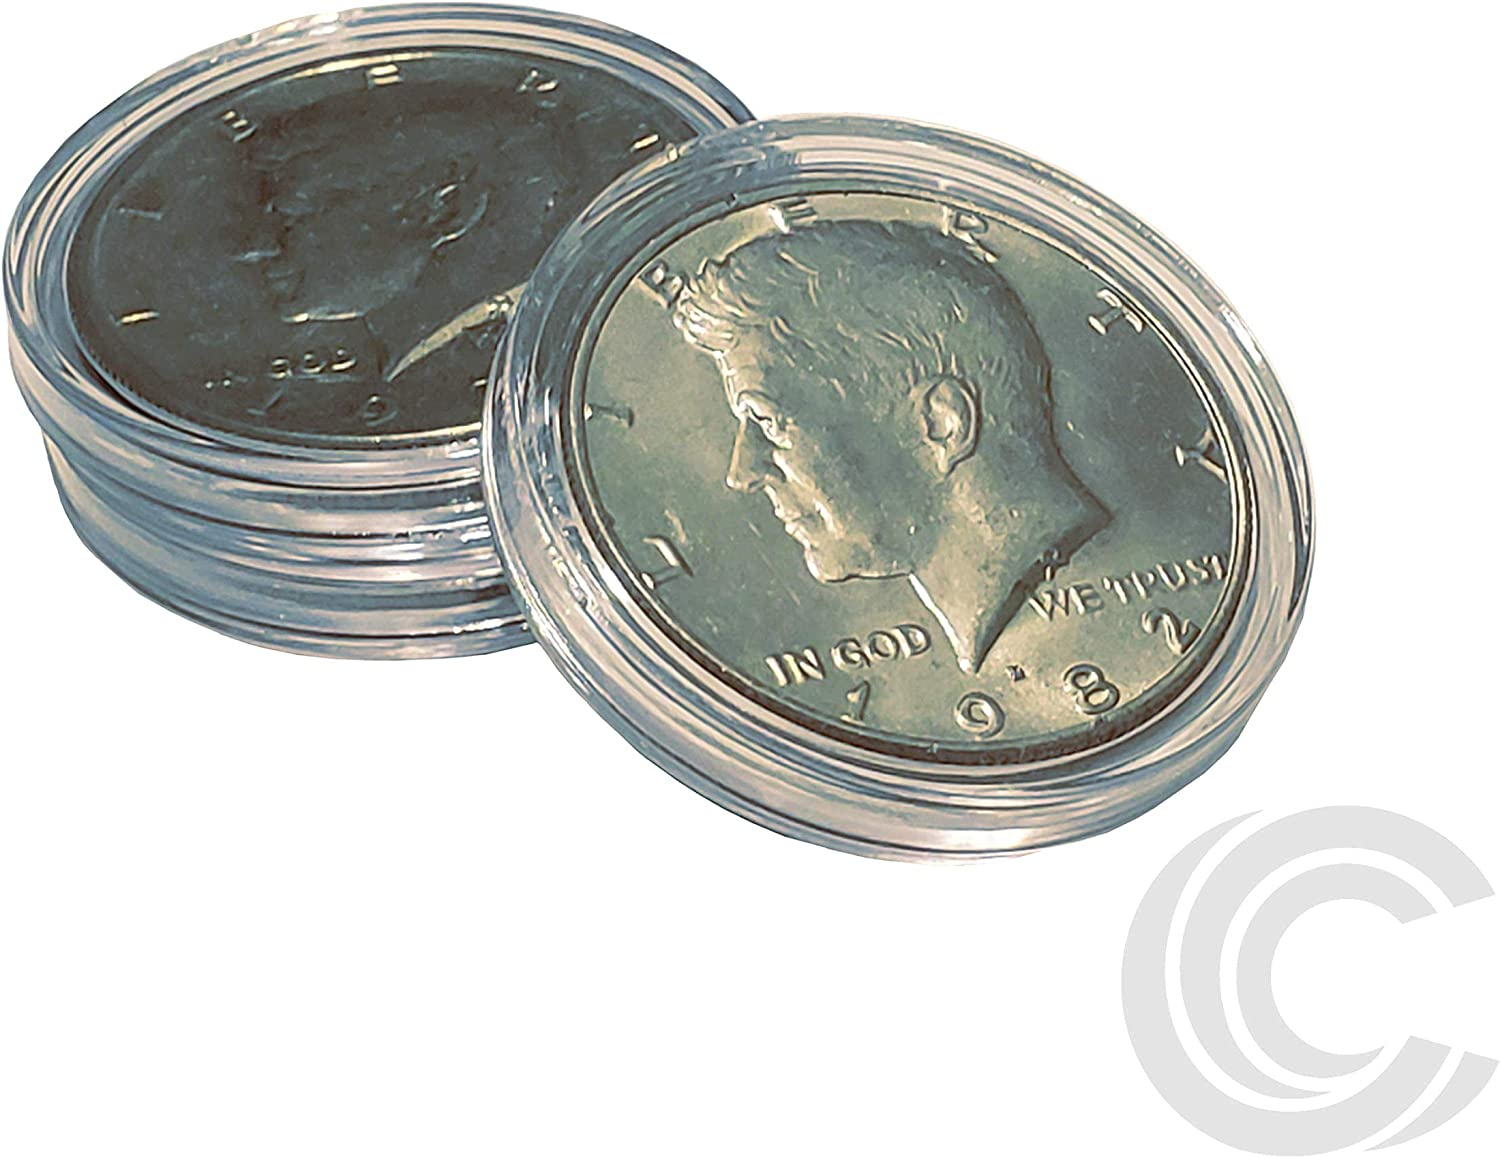 50 coin holders 30.6mm direct fit coin capsules for JFK HALF DOLLAR